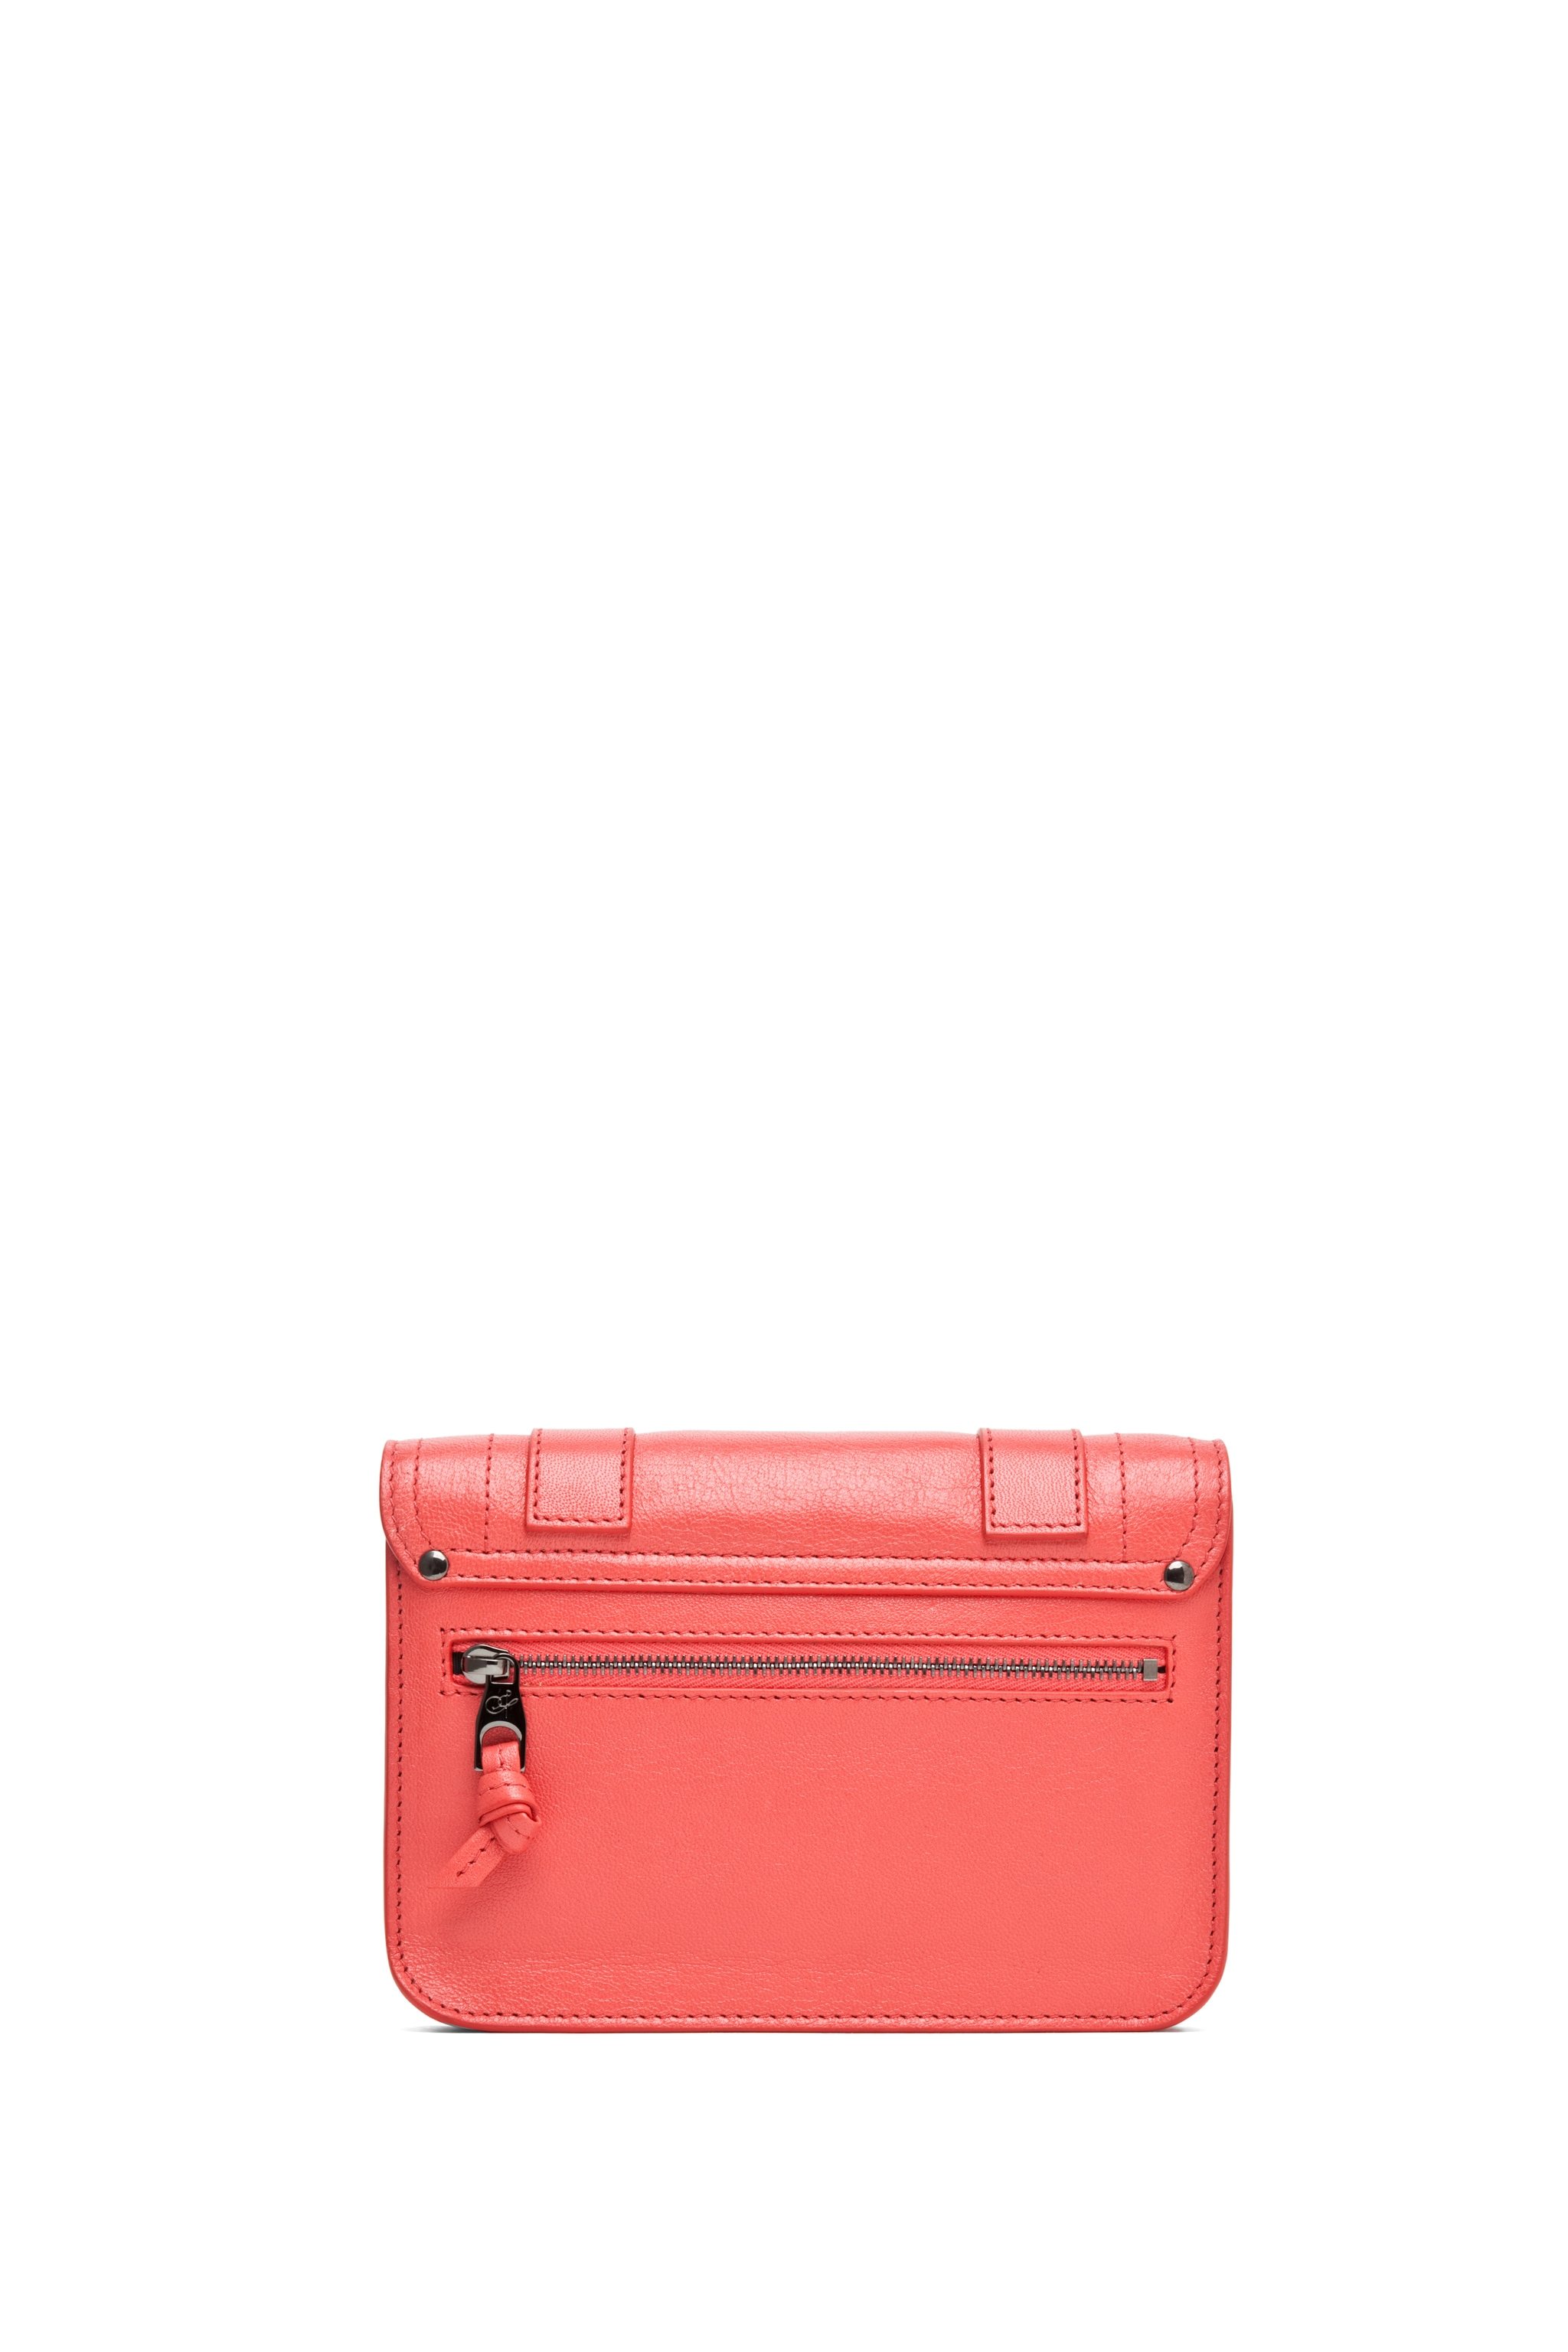 Image 2 of Proenza Schouler PS1 Large Chain Wallet in Deep Coral